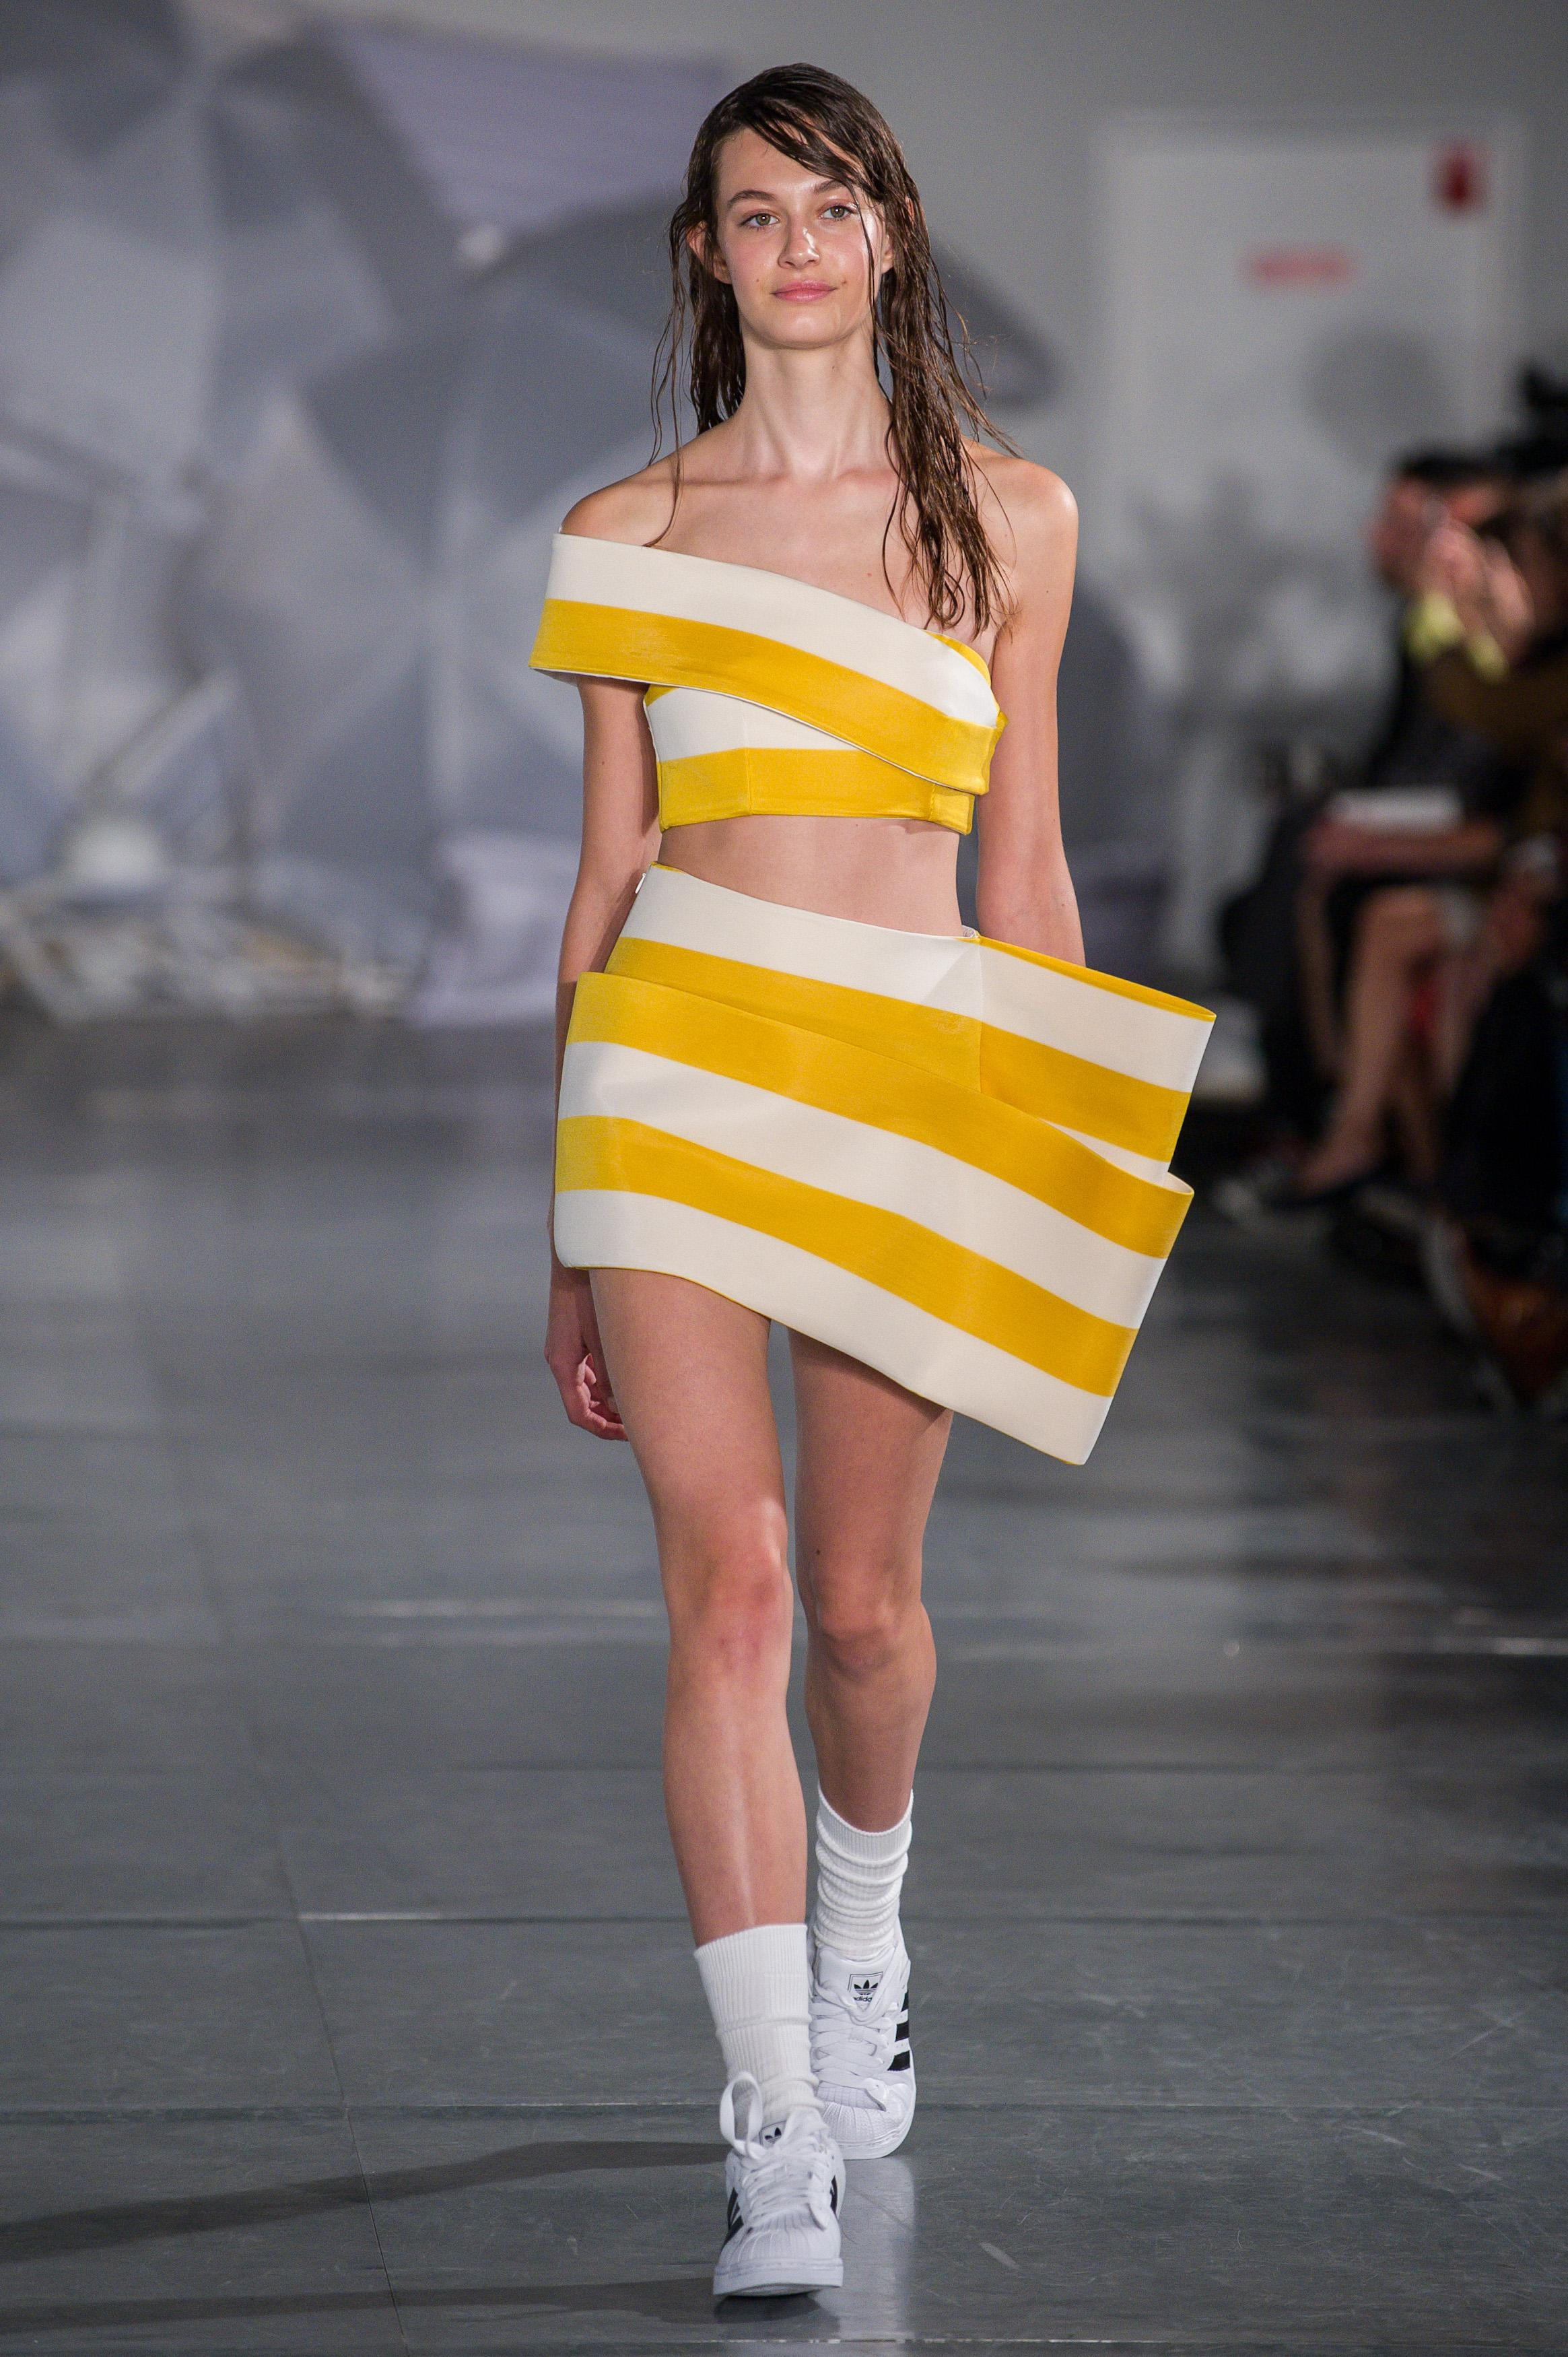 A model walking the runway with wet hair.